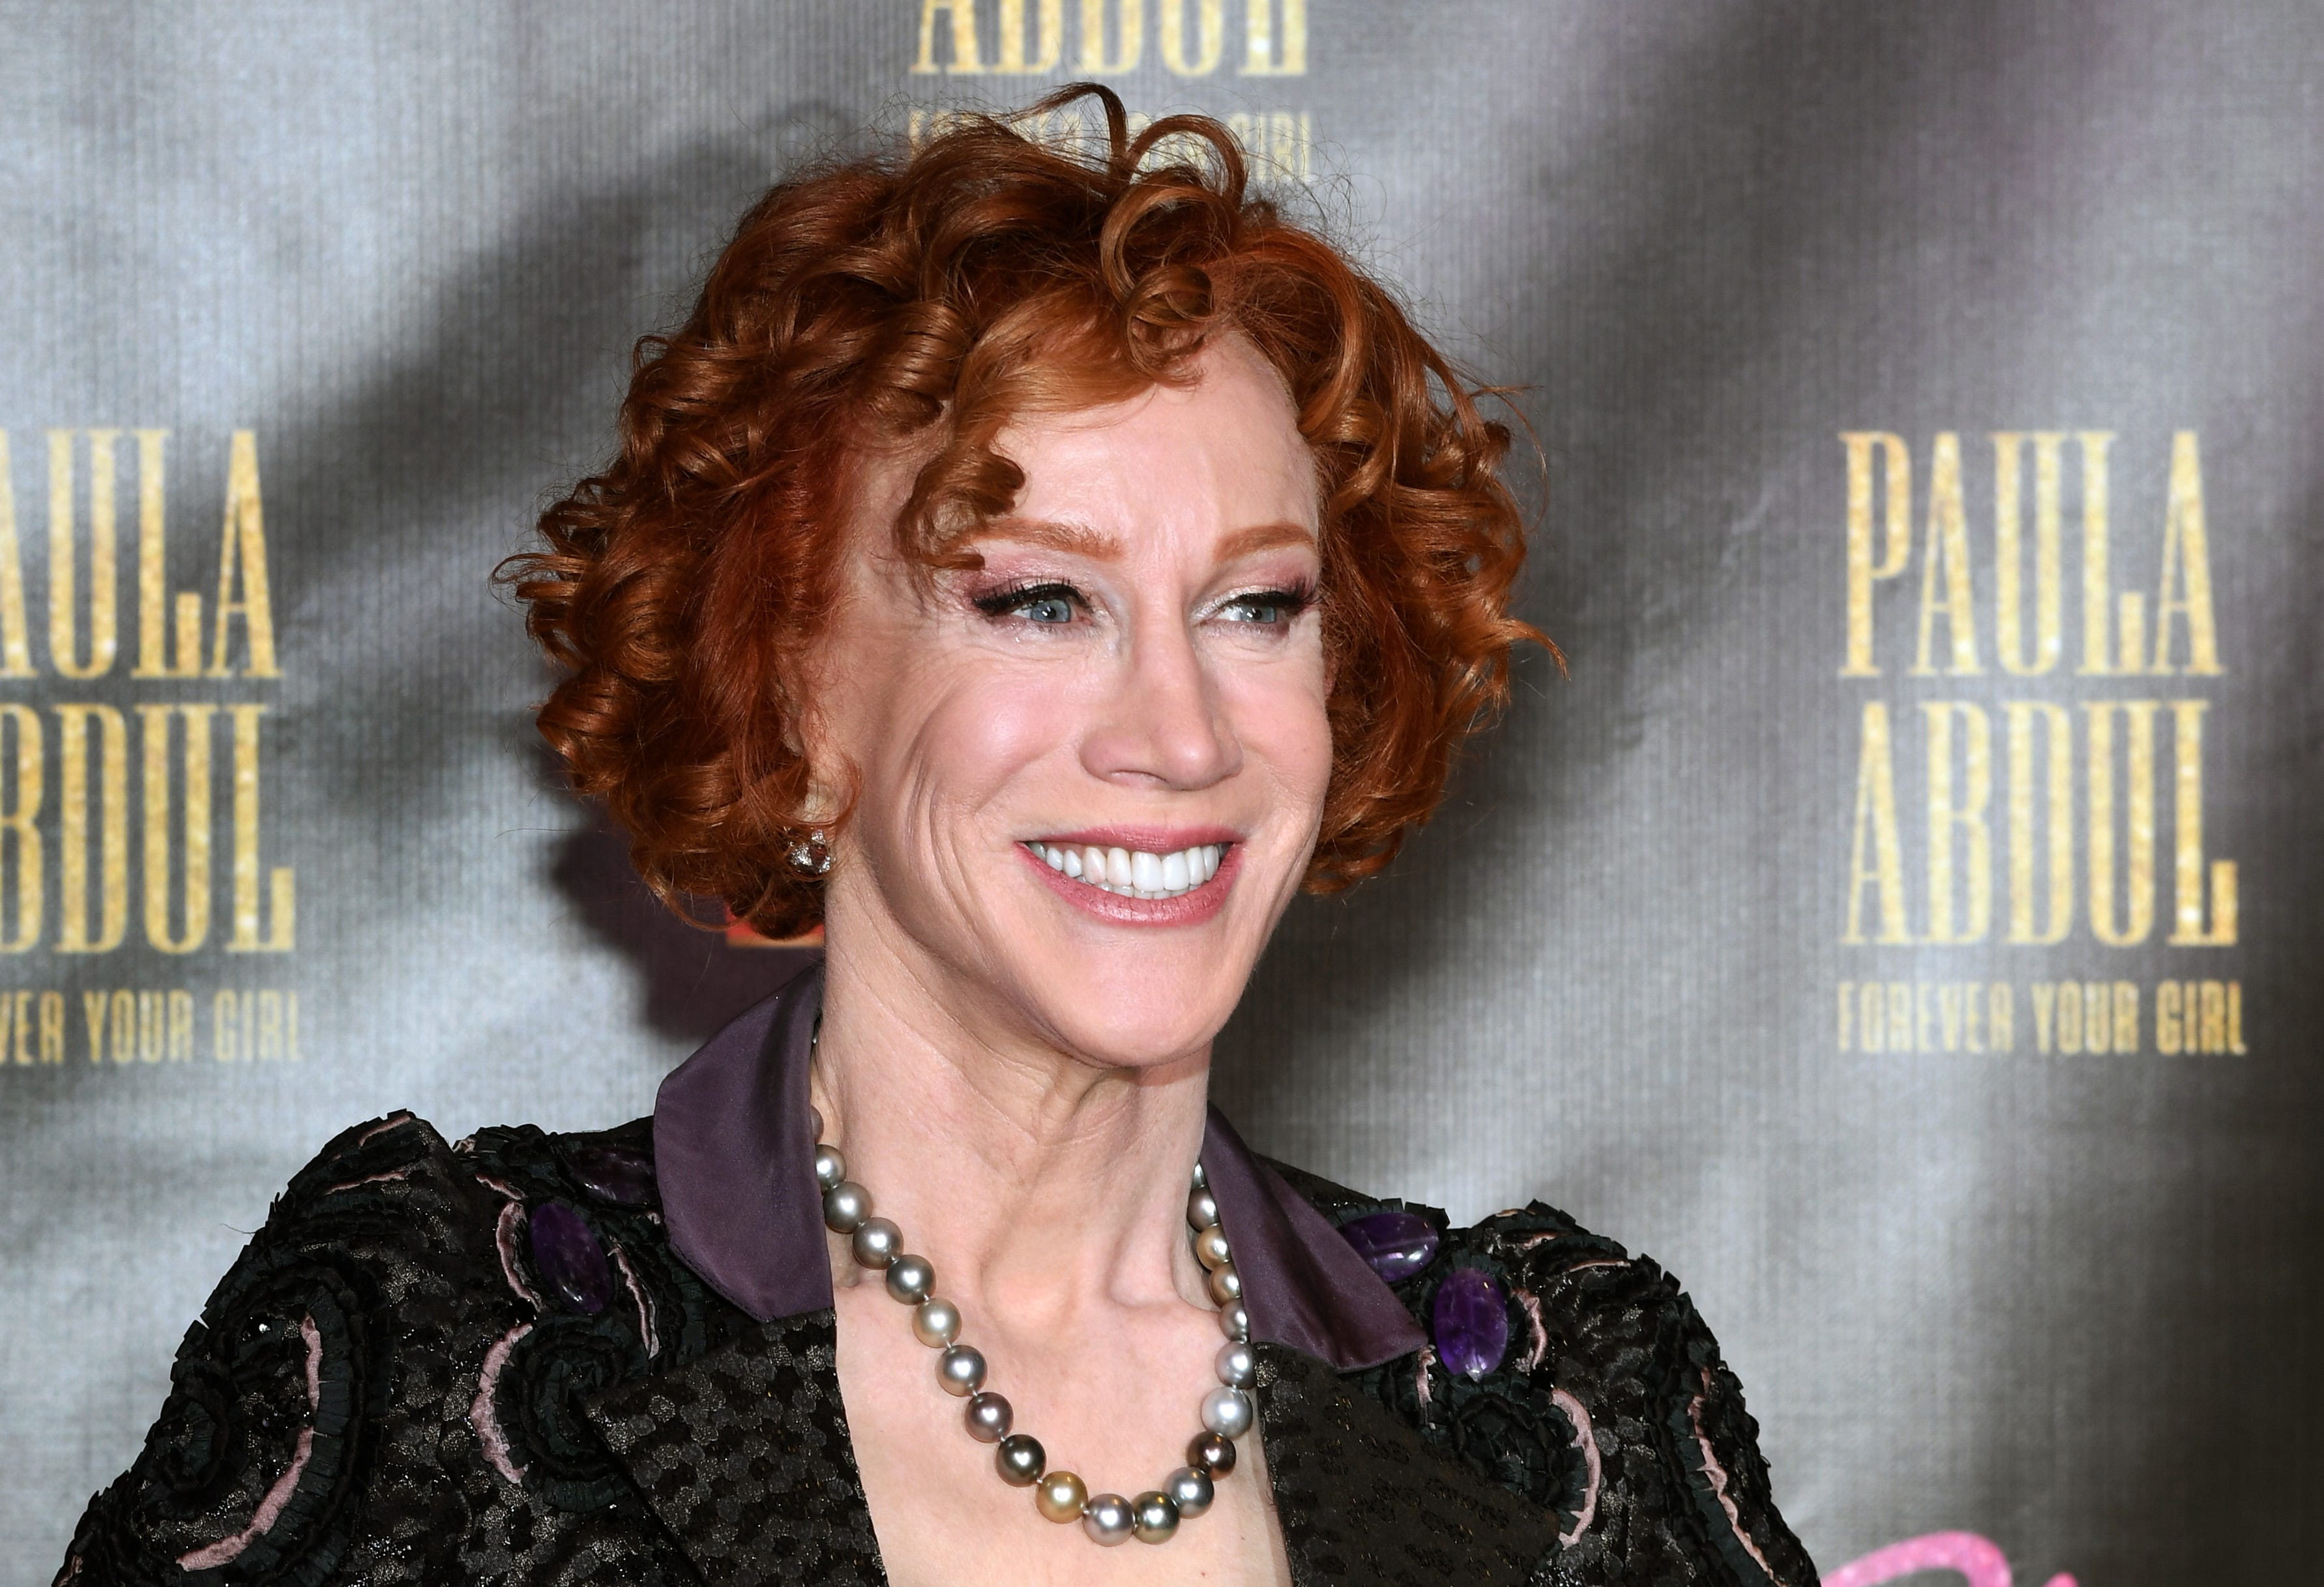 Kathy Griffin wearing a purple shirt and smiling at the camera Kathy Griffin attends the official opening of Paula Abdul's Flamingo Las Vegas residency